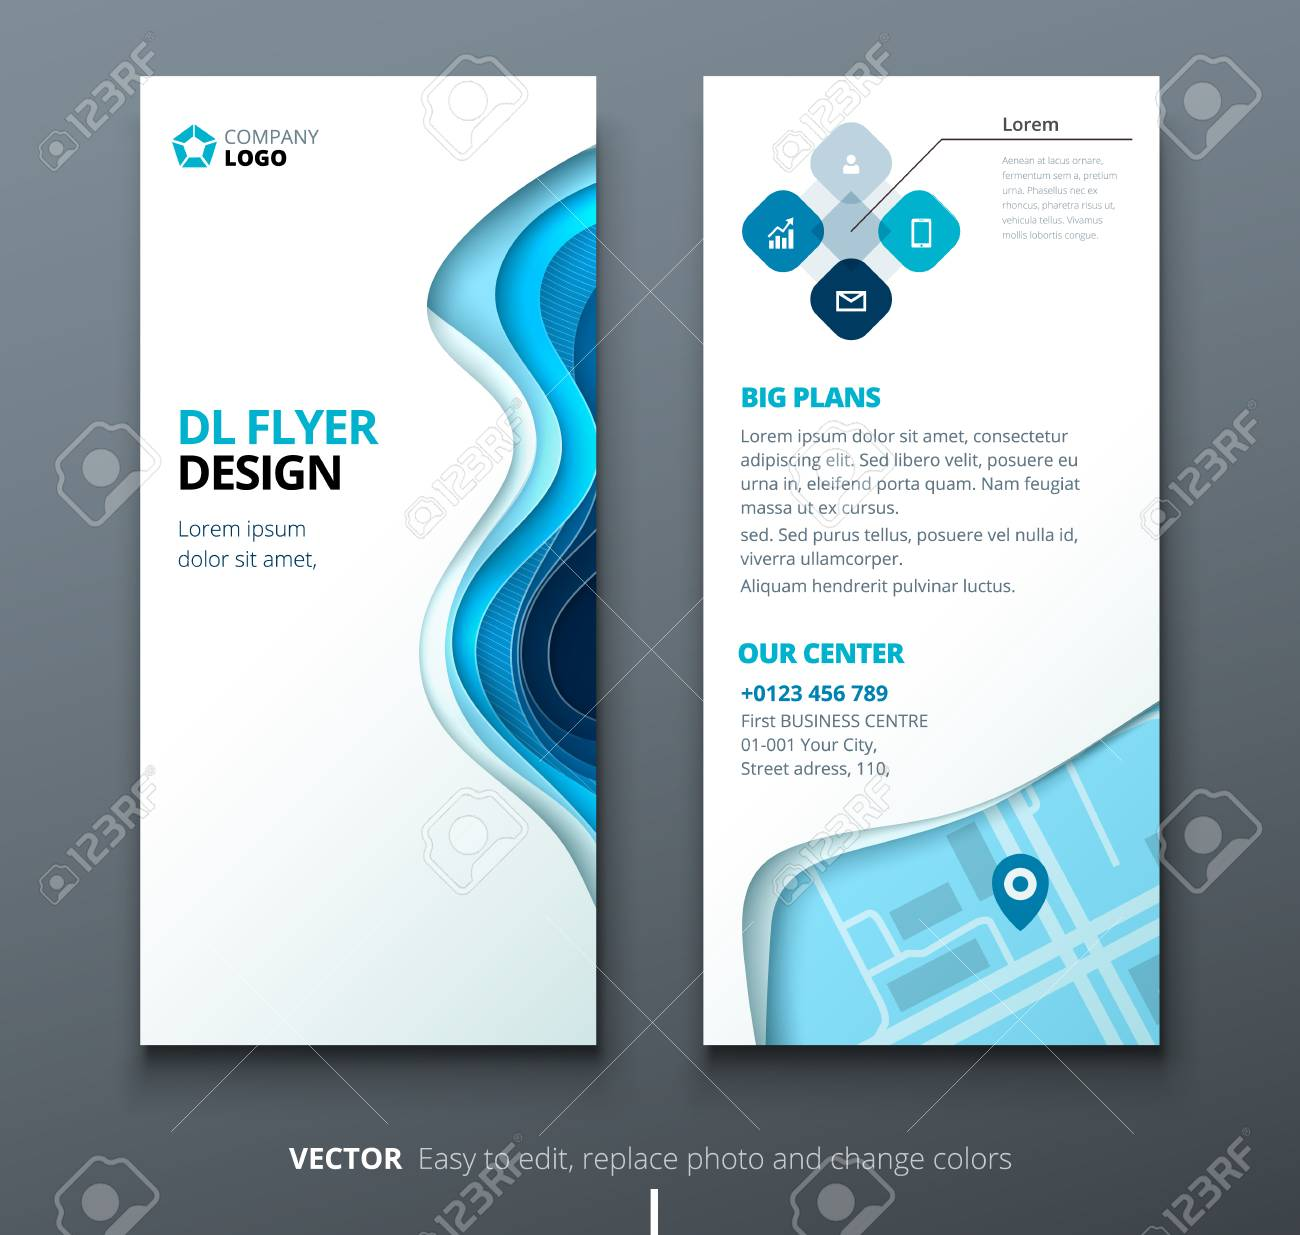 Dl Flyer Design Corporate Business Template For Brochure Or